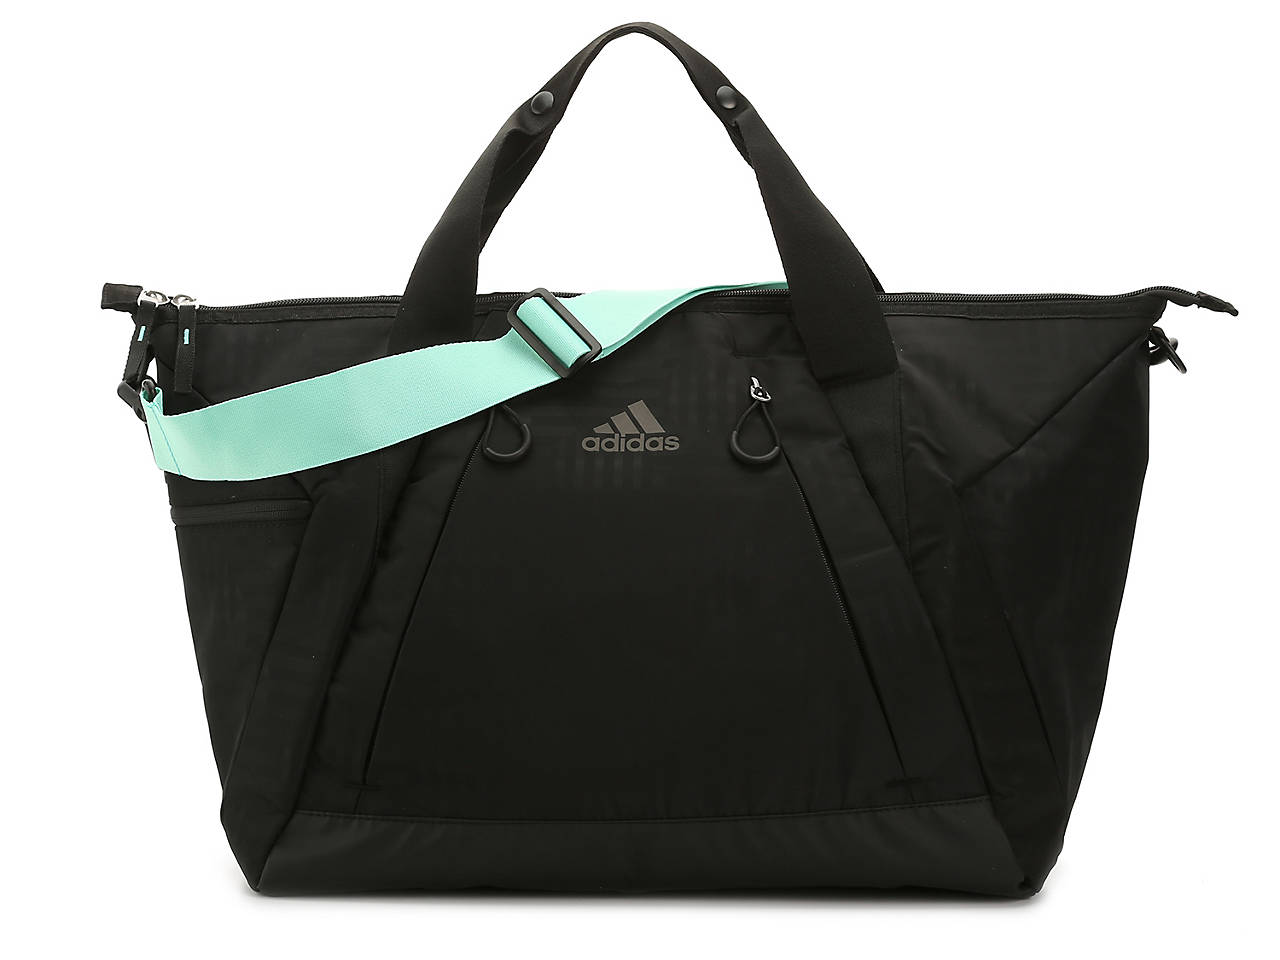 6713c540c8 adidas Studio II Gym Bag Women s Handbags   Accessories